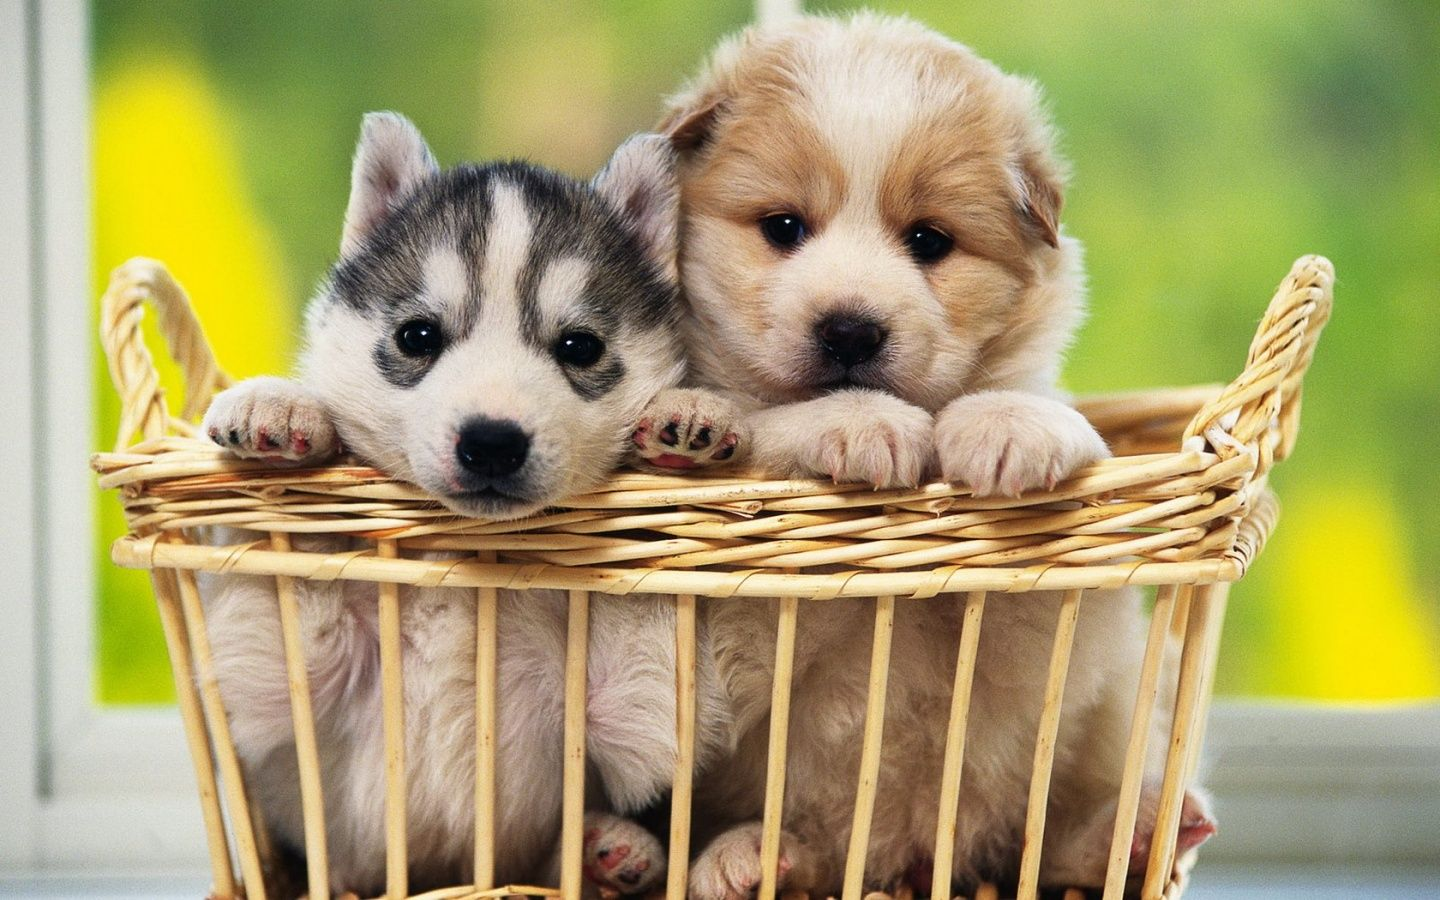 Adorable Cute Puppy Pictures Cute Dog Wallpaper Cute Puppies